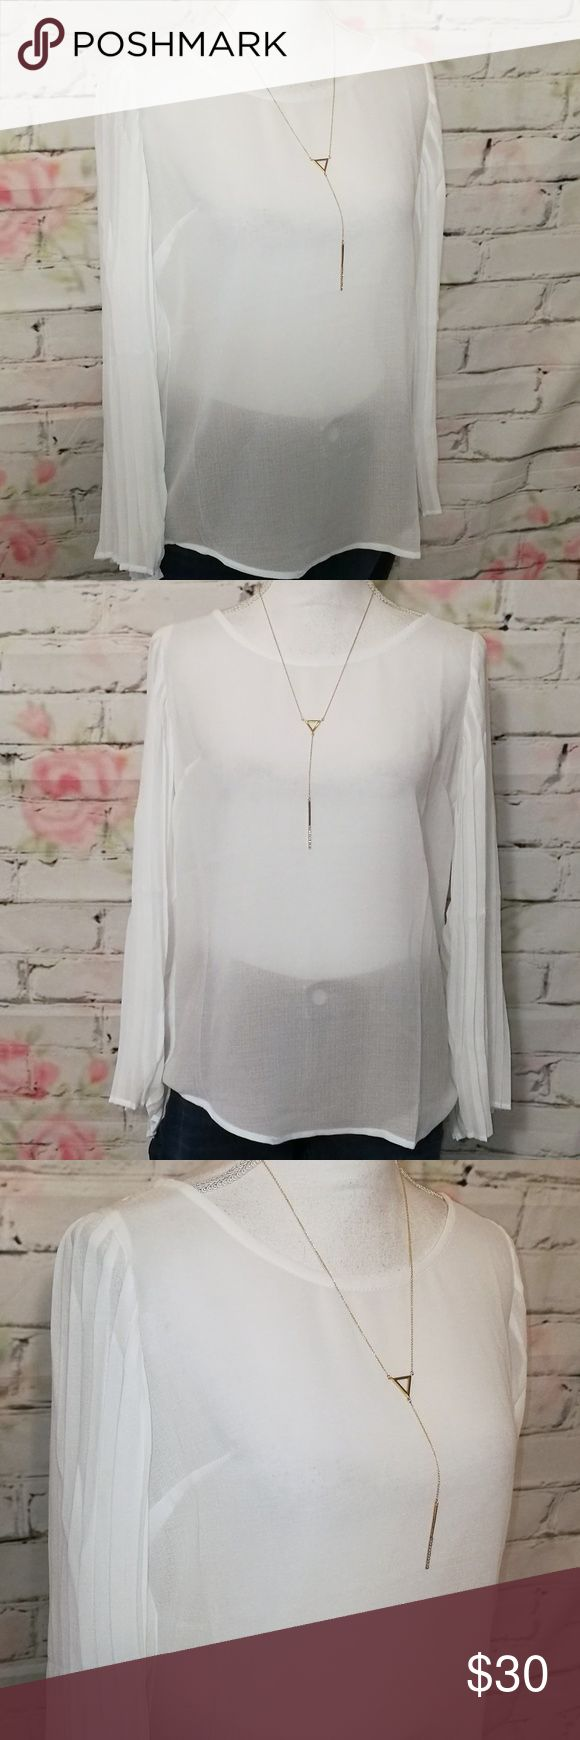 """🆕♥️Love Riche Pretty, Sheer White Peasant Blouse Pretty, Sheer White Peasant style blouse from Love Riche  - beautiful wide, pleated sleeves  - slight high-low style - pleated lightly at back neckline - laying flat, measures approx 10.5"""" across chest  - polyester Love Riche Tops Blouses"""